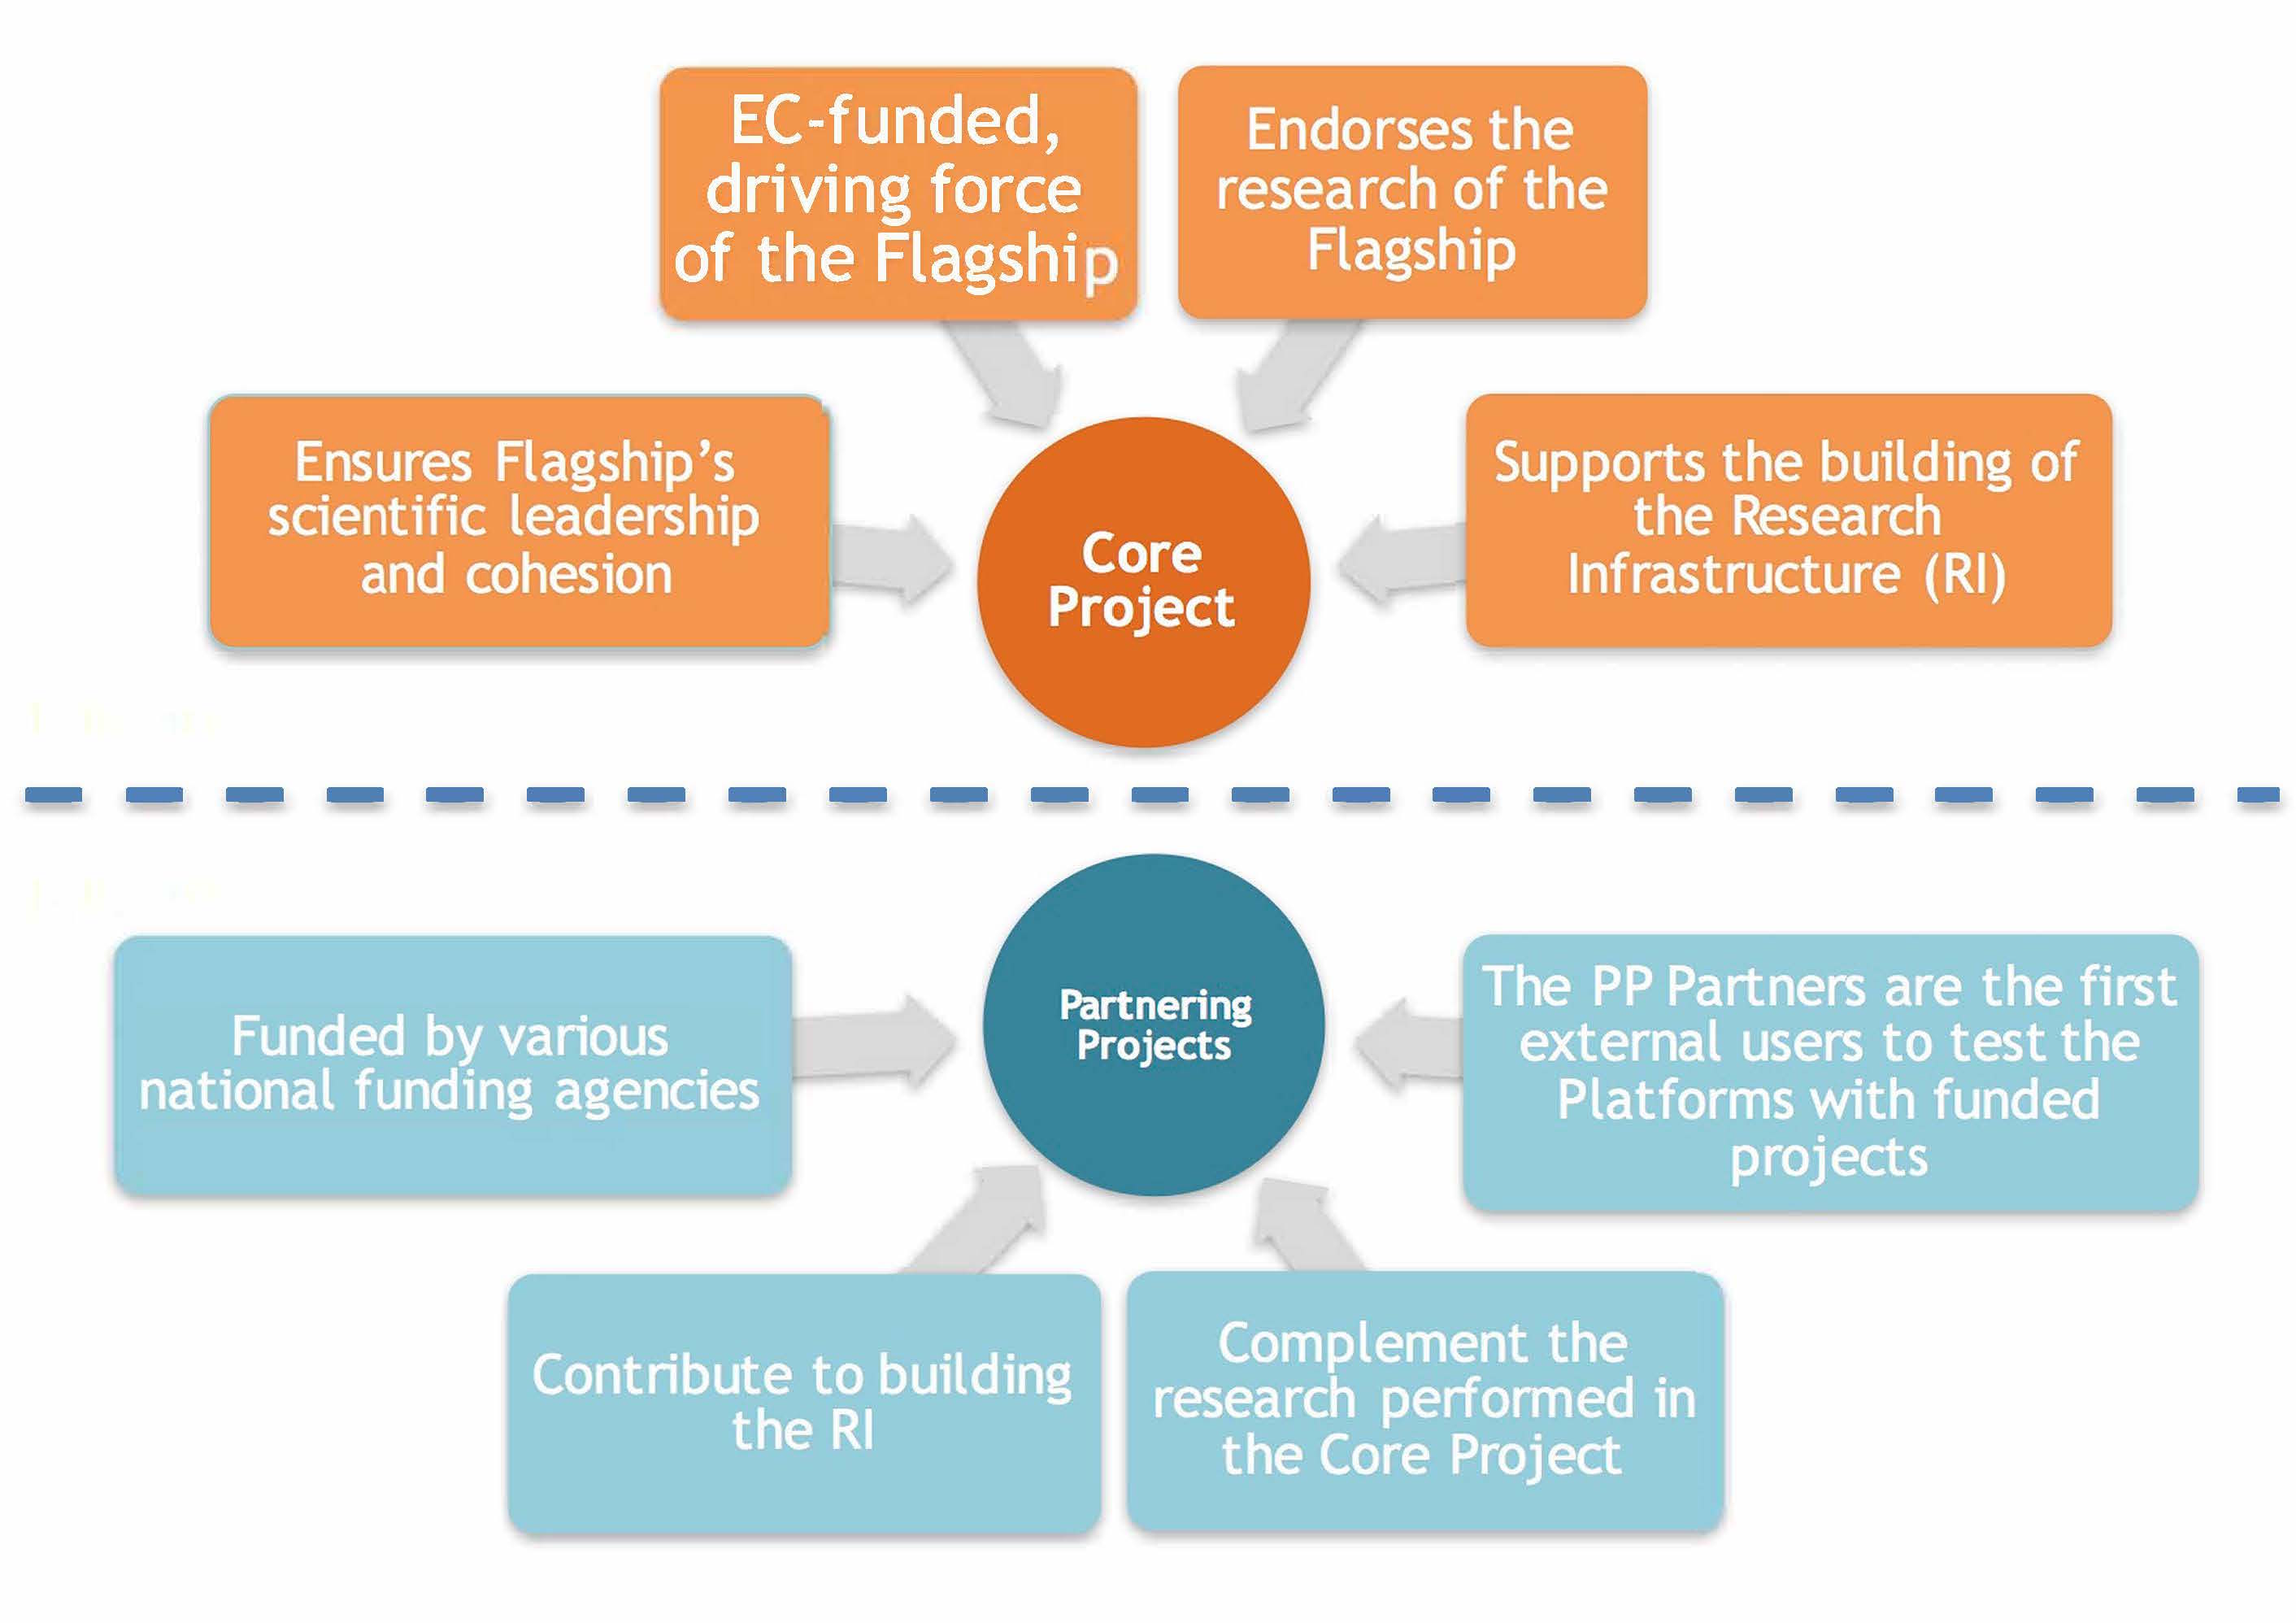 Core Project and Partnering Project